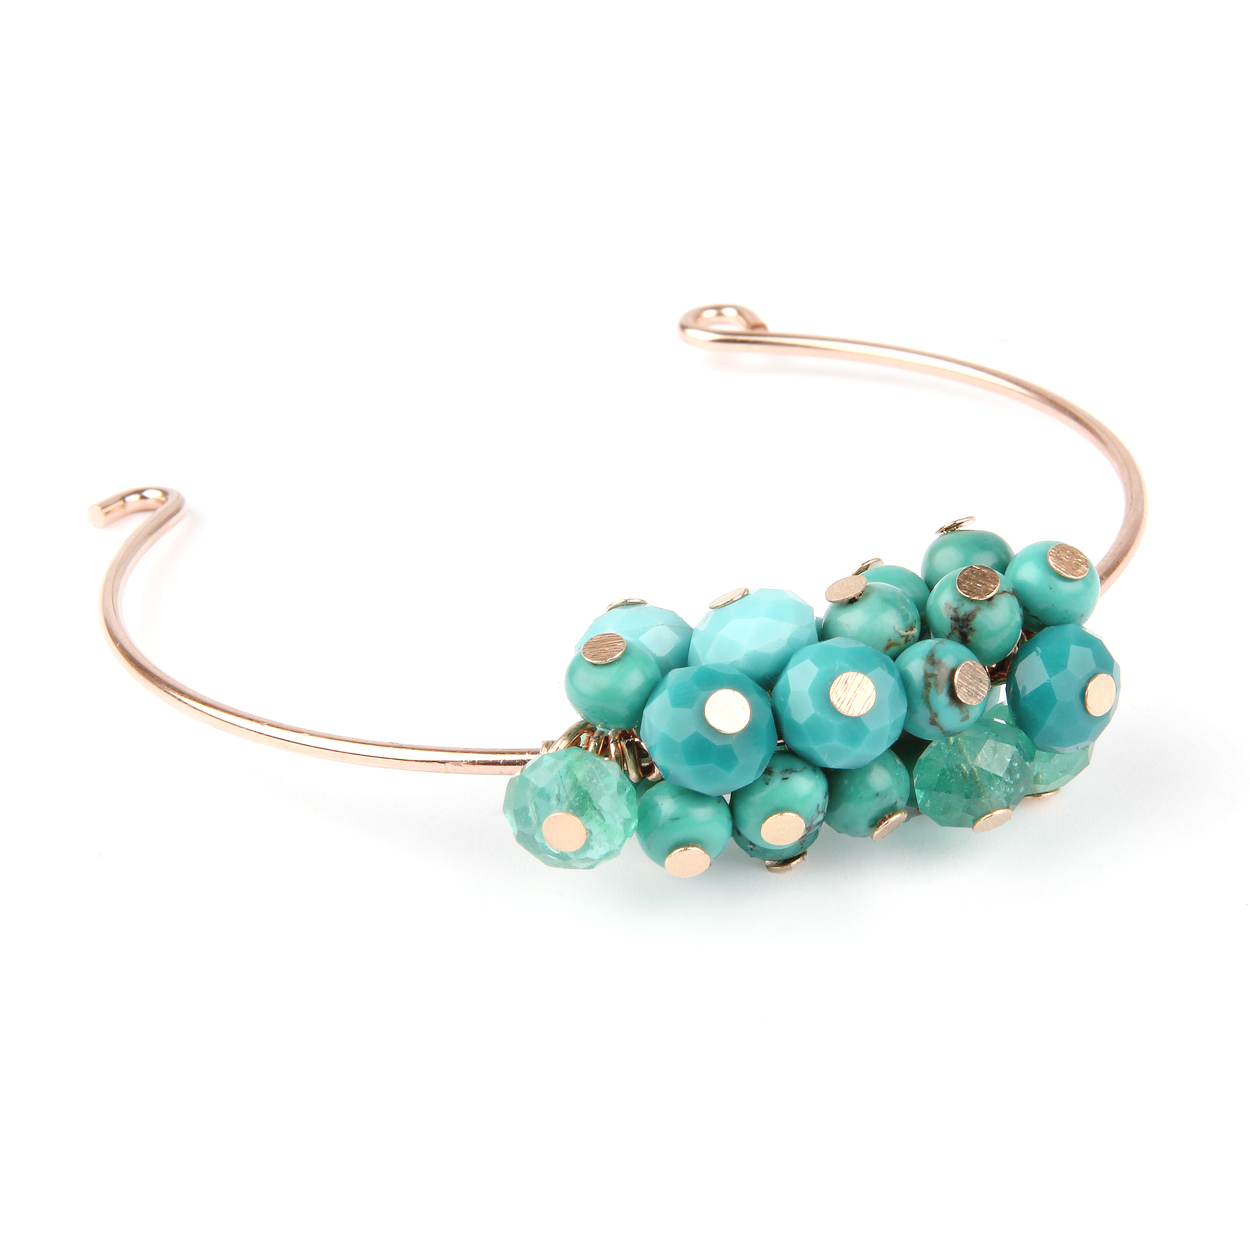 Seascape Turquoise Bangle Bracelet